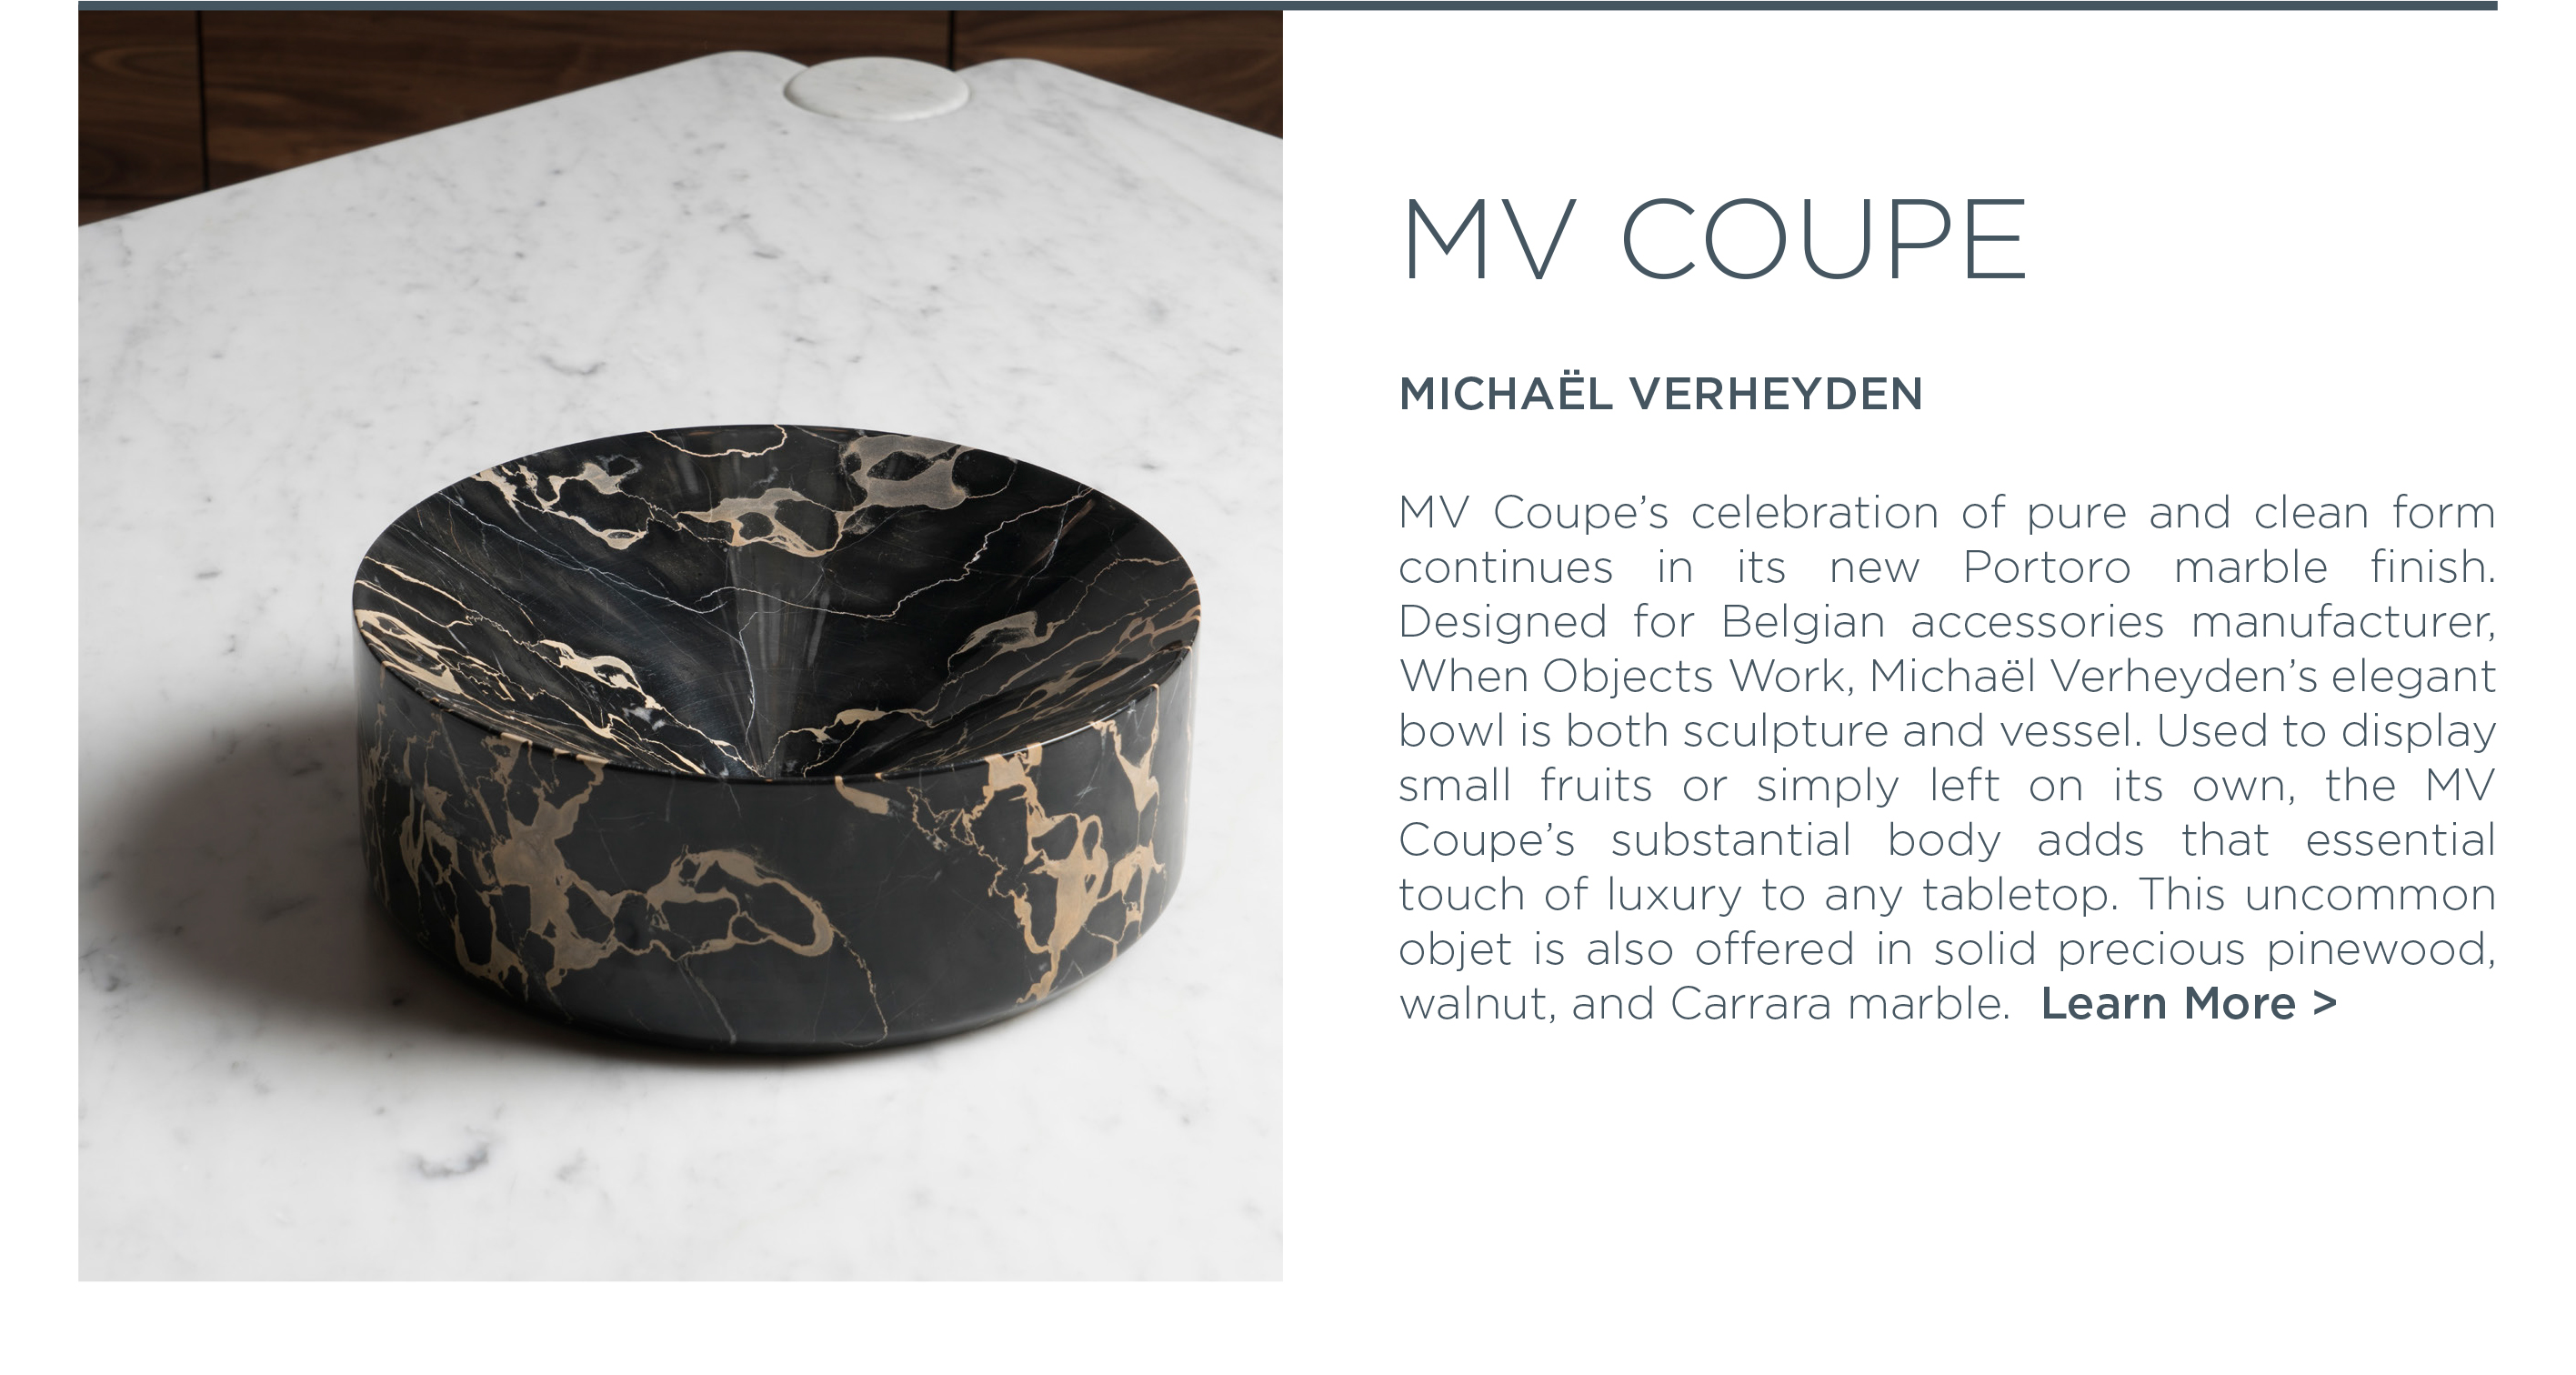 ... York Icff 2016 Mv Coupe Portoro Marble Bowl Michael Verheyden When  Objects Work Luxury Tabletop Accessories Suite